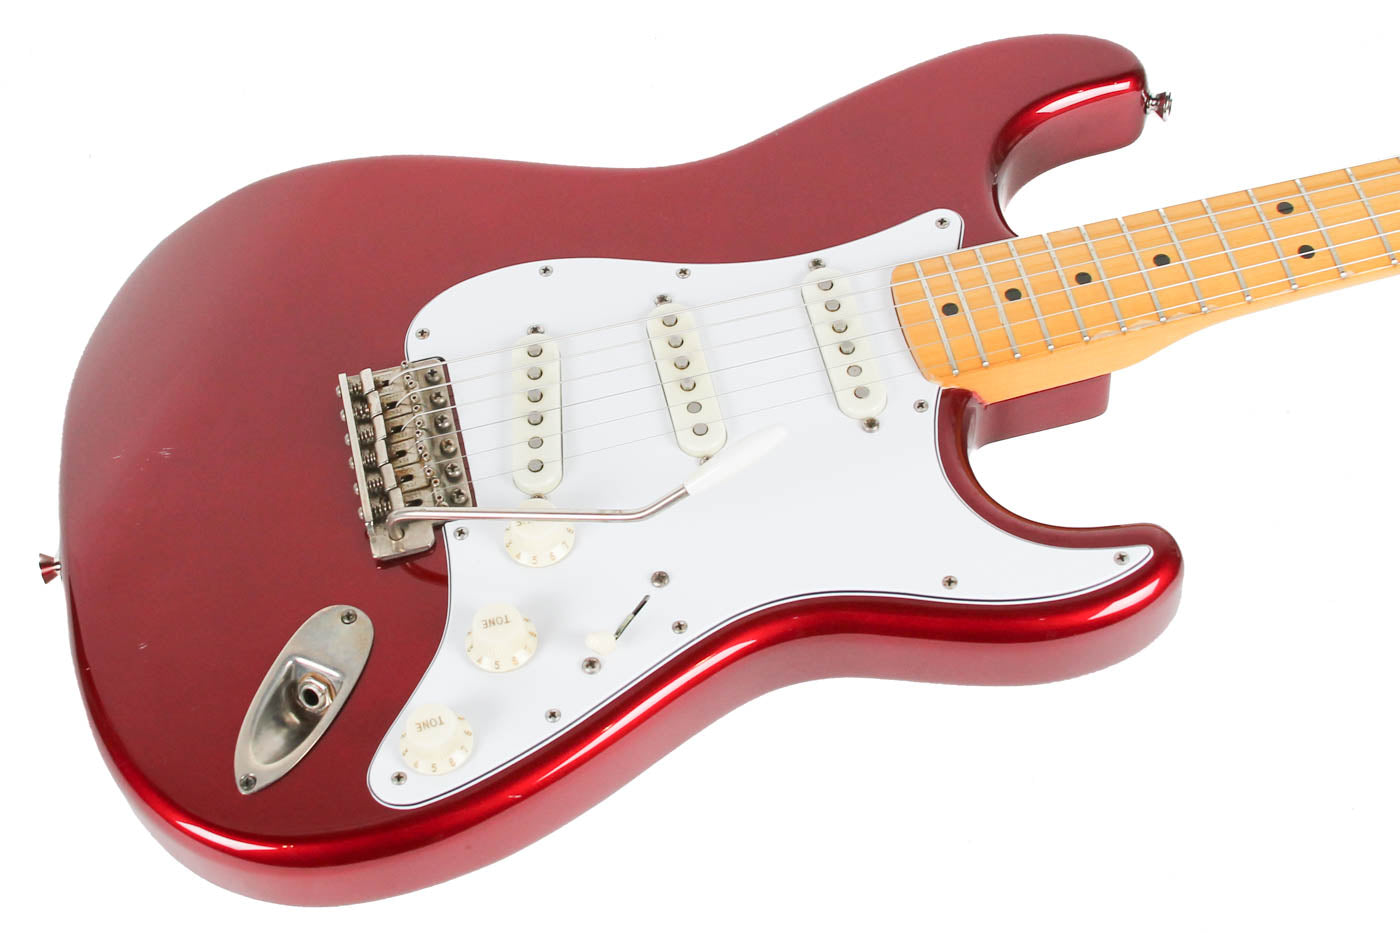 1994 Fender MIJ 70s Stratocaster Reissue Candy Apple Red image 7